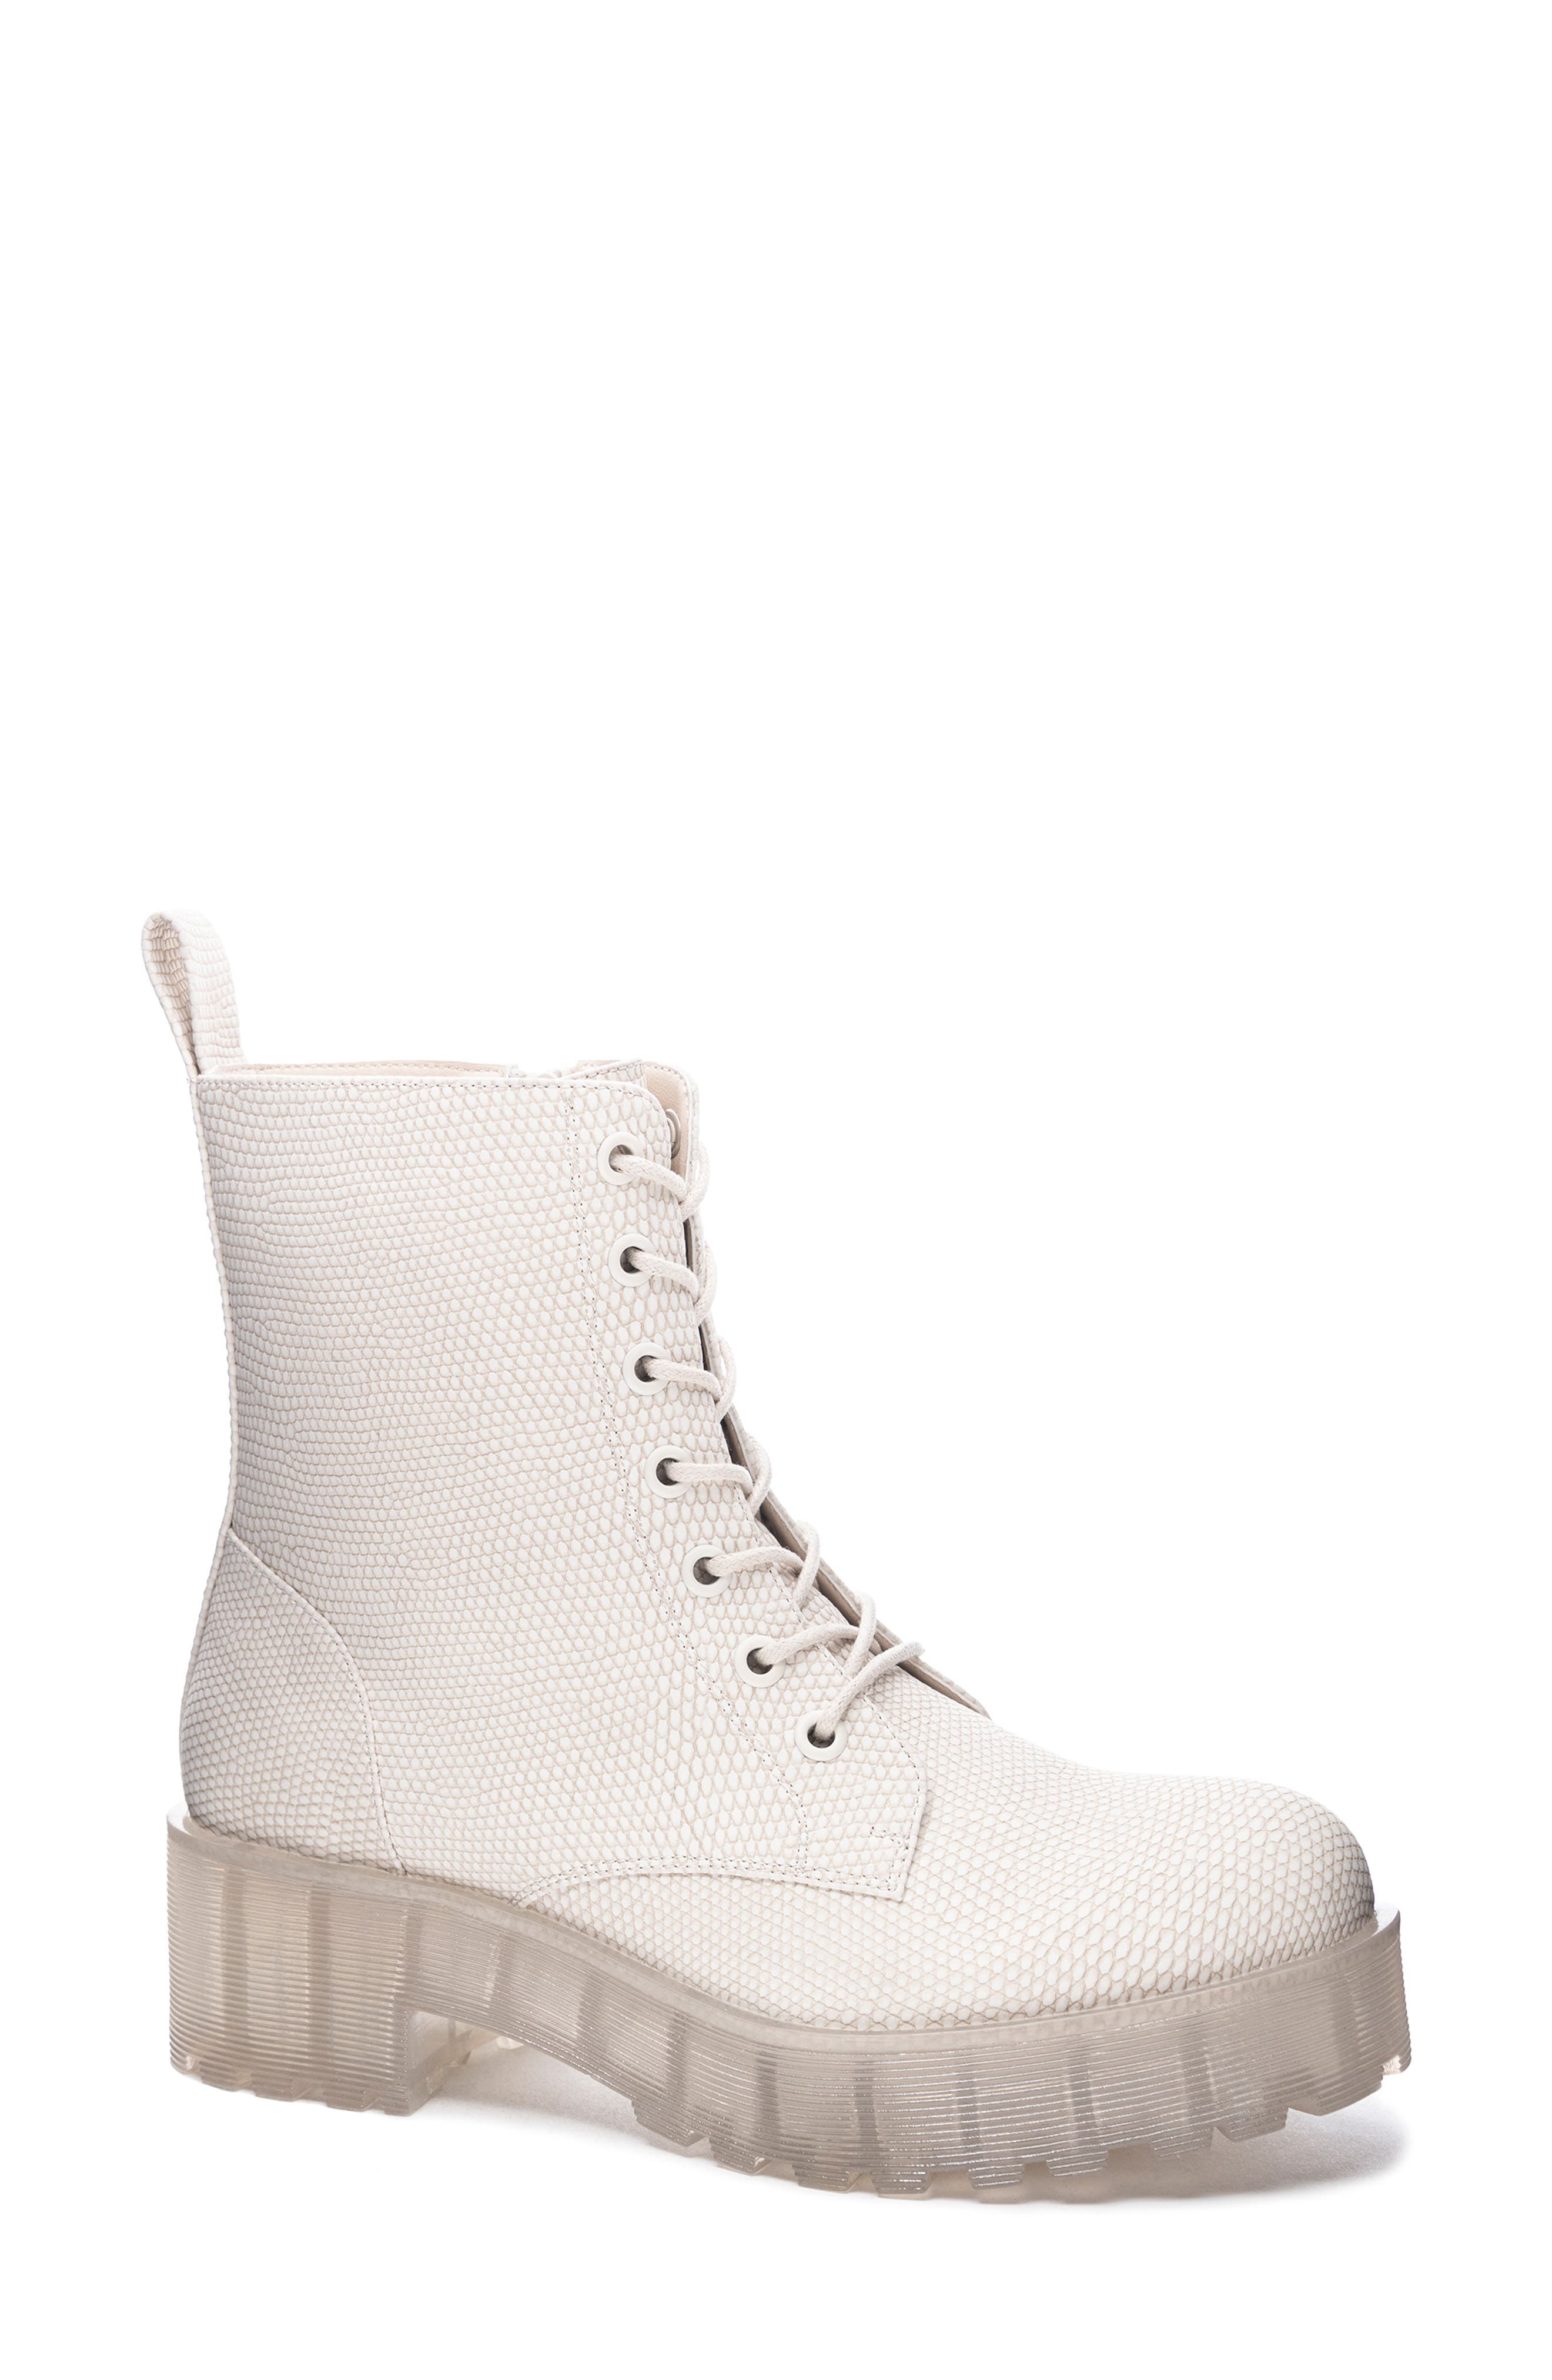 Mazzy Lace-Up Boot